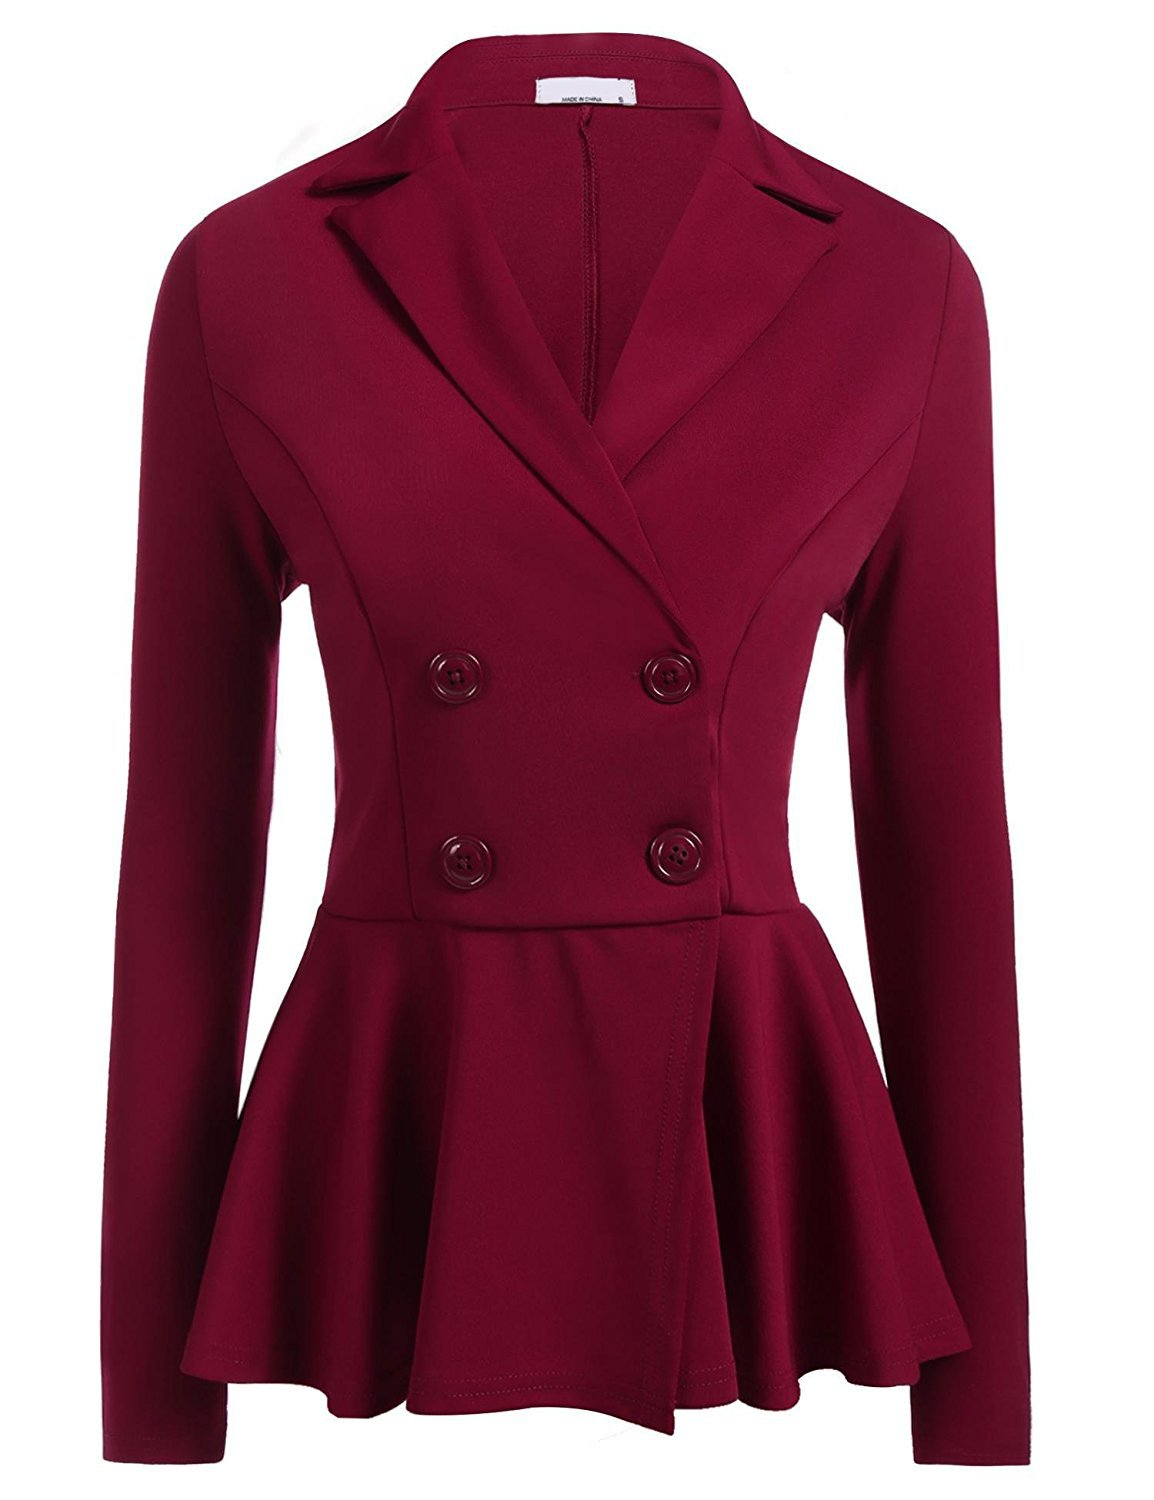 Women Slim Suit Coat Spring Autumn Long Sleeve Double-Breasted Work Wear Casual Jacket burgundy